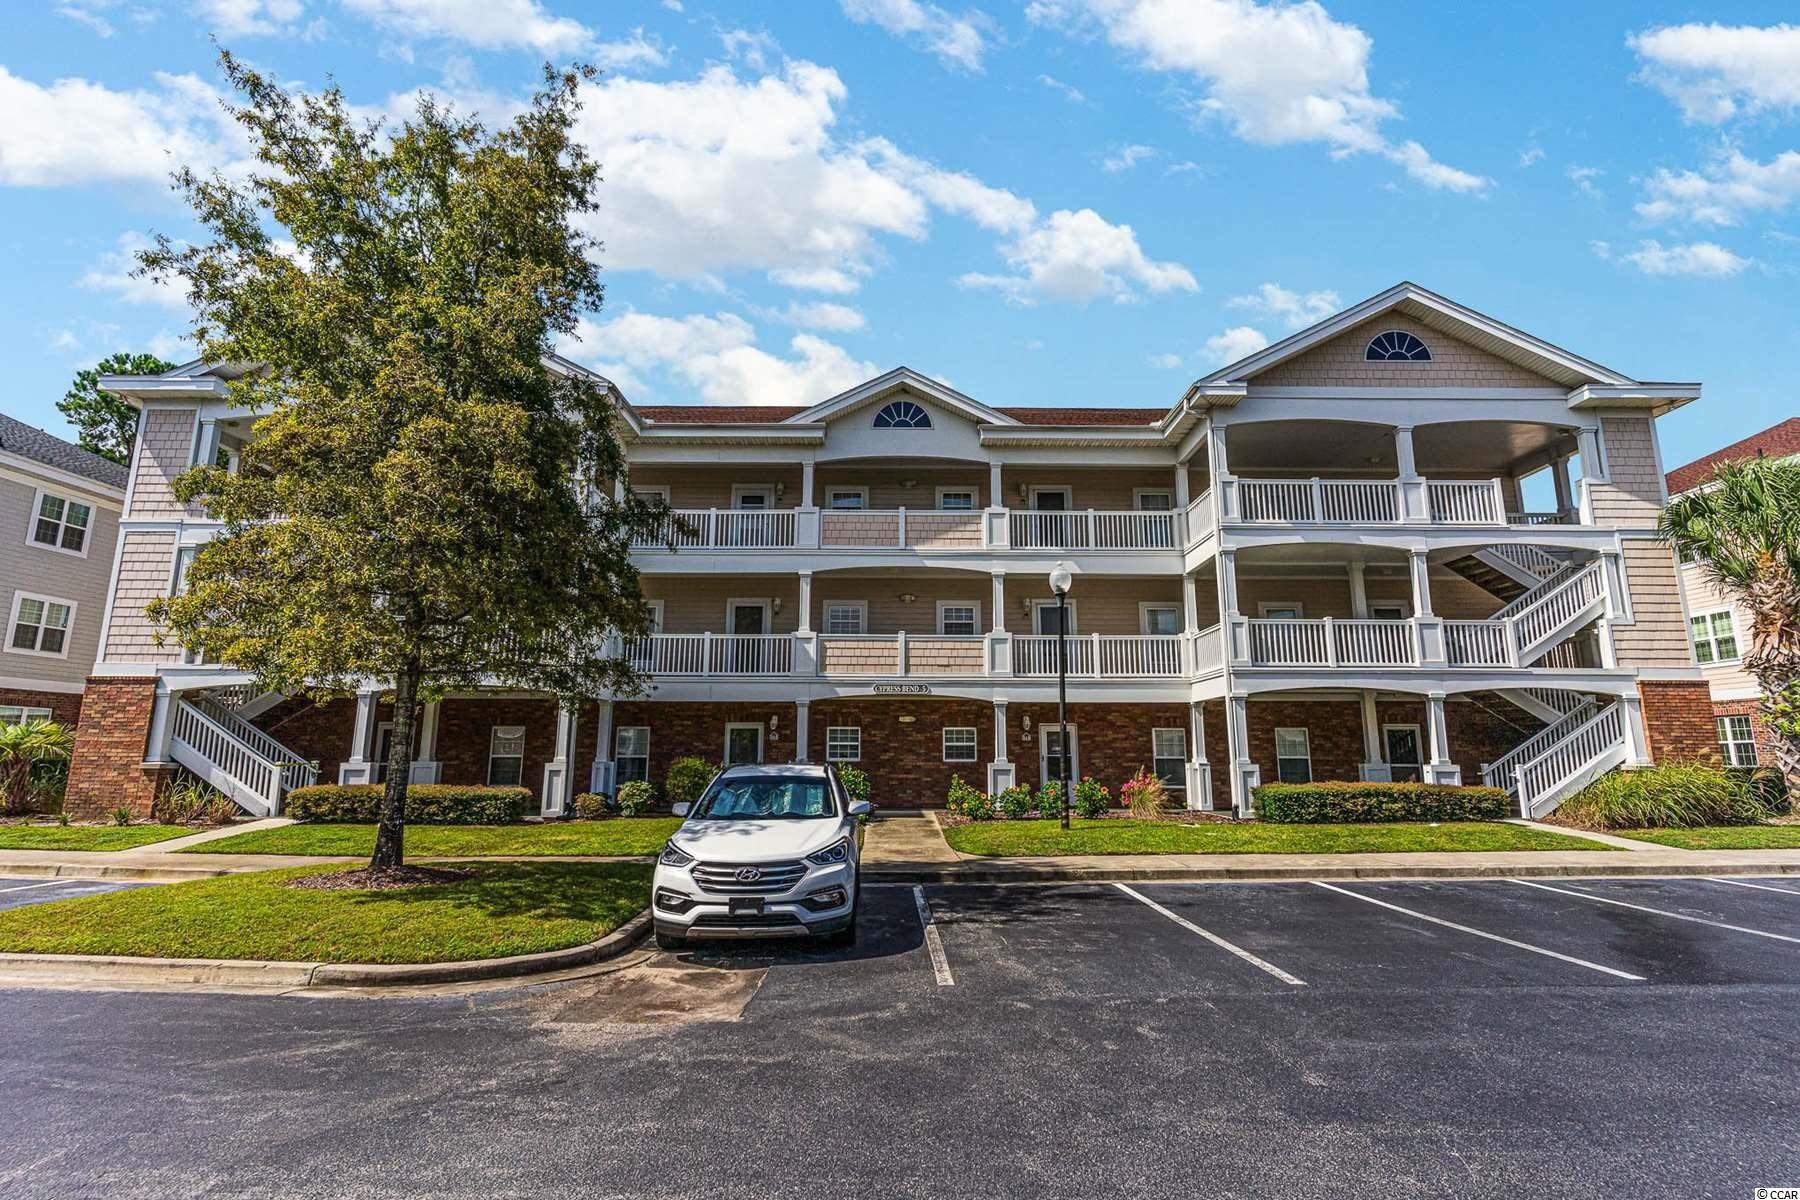 TAKE A look at this beautiful end-unit in the highly desirable community of Cypress bend at Barefoot Resort. This beautiful, 2 bed 2 bath condo comes FULLY furnished. This unit features a bright & sunny open floor plan and a great golf course view! The master suite offers a walk in closet and a tub/shower combo. Generously sized additional bedroom has ample closet space. The kitchen offers ample counter space & cabinet space. Owners and their guests can enjoy a pool, basketball court and volleyball right in the property. Barefoot Resort has many amenities including a Beach Cabana, with private parking & restrooms. Shuttle service too and from the Cabana is provided during the summer months. You will also have access to an Olympic Sized Salt Water Pool that overlooks the Intracoastal Waterway. Conveniently located just minutes from the beach and all the shopping, dining and entertainment that North Myrtle Beach has to offer. Do not miss out on this incredibly rare opportunity and schedule a showing today!